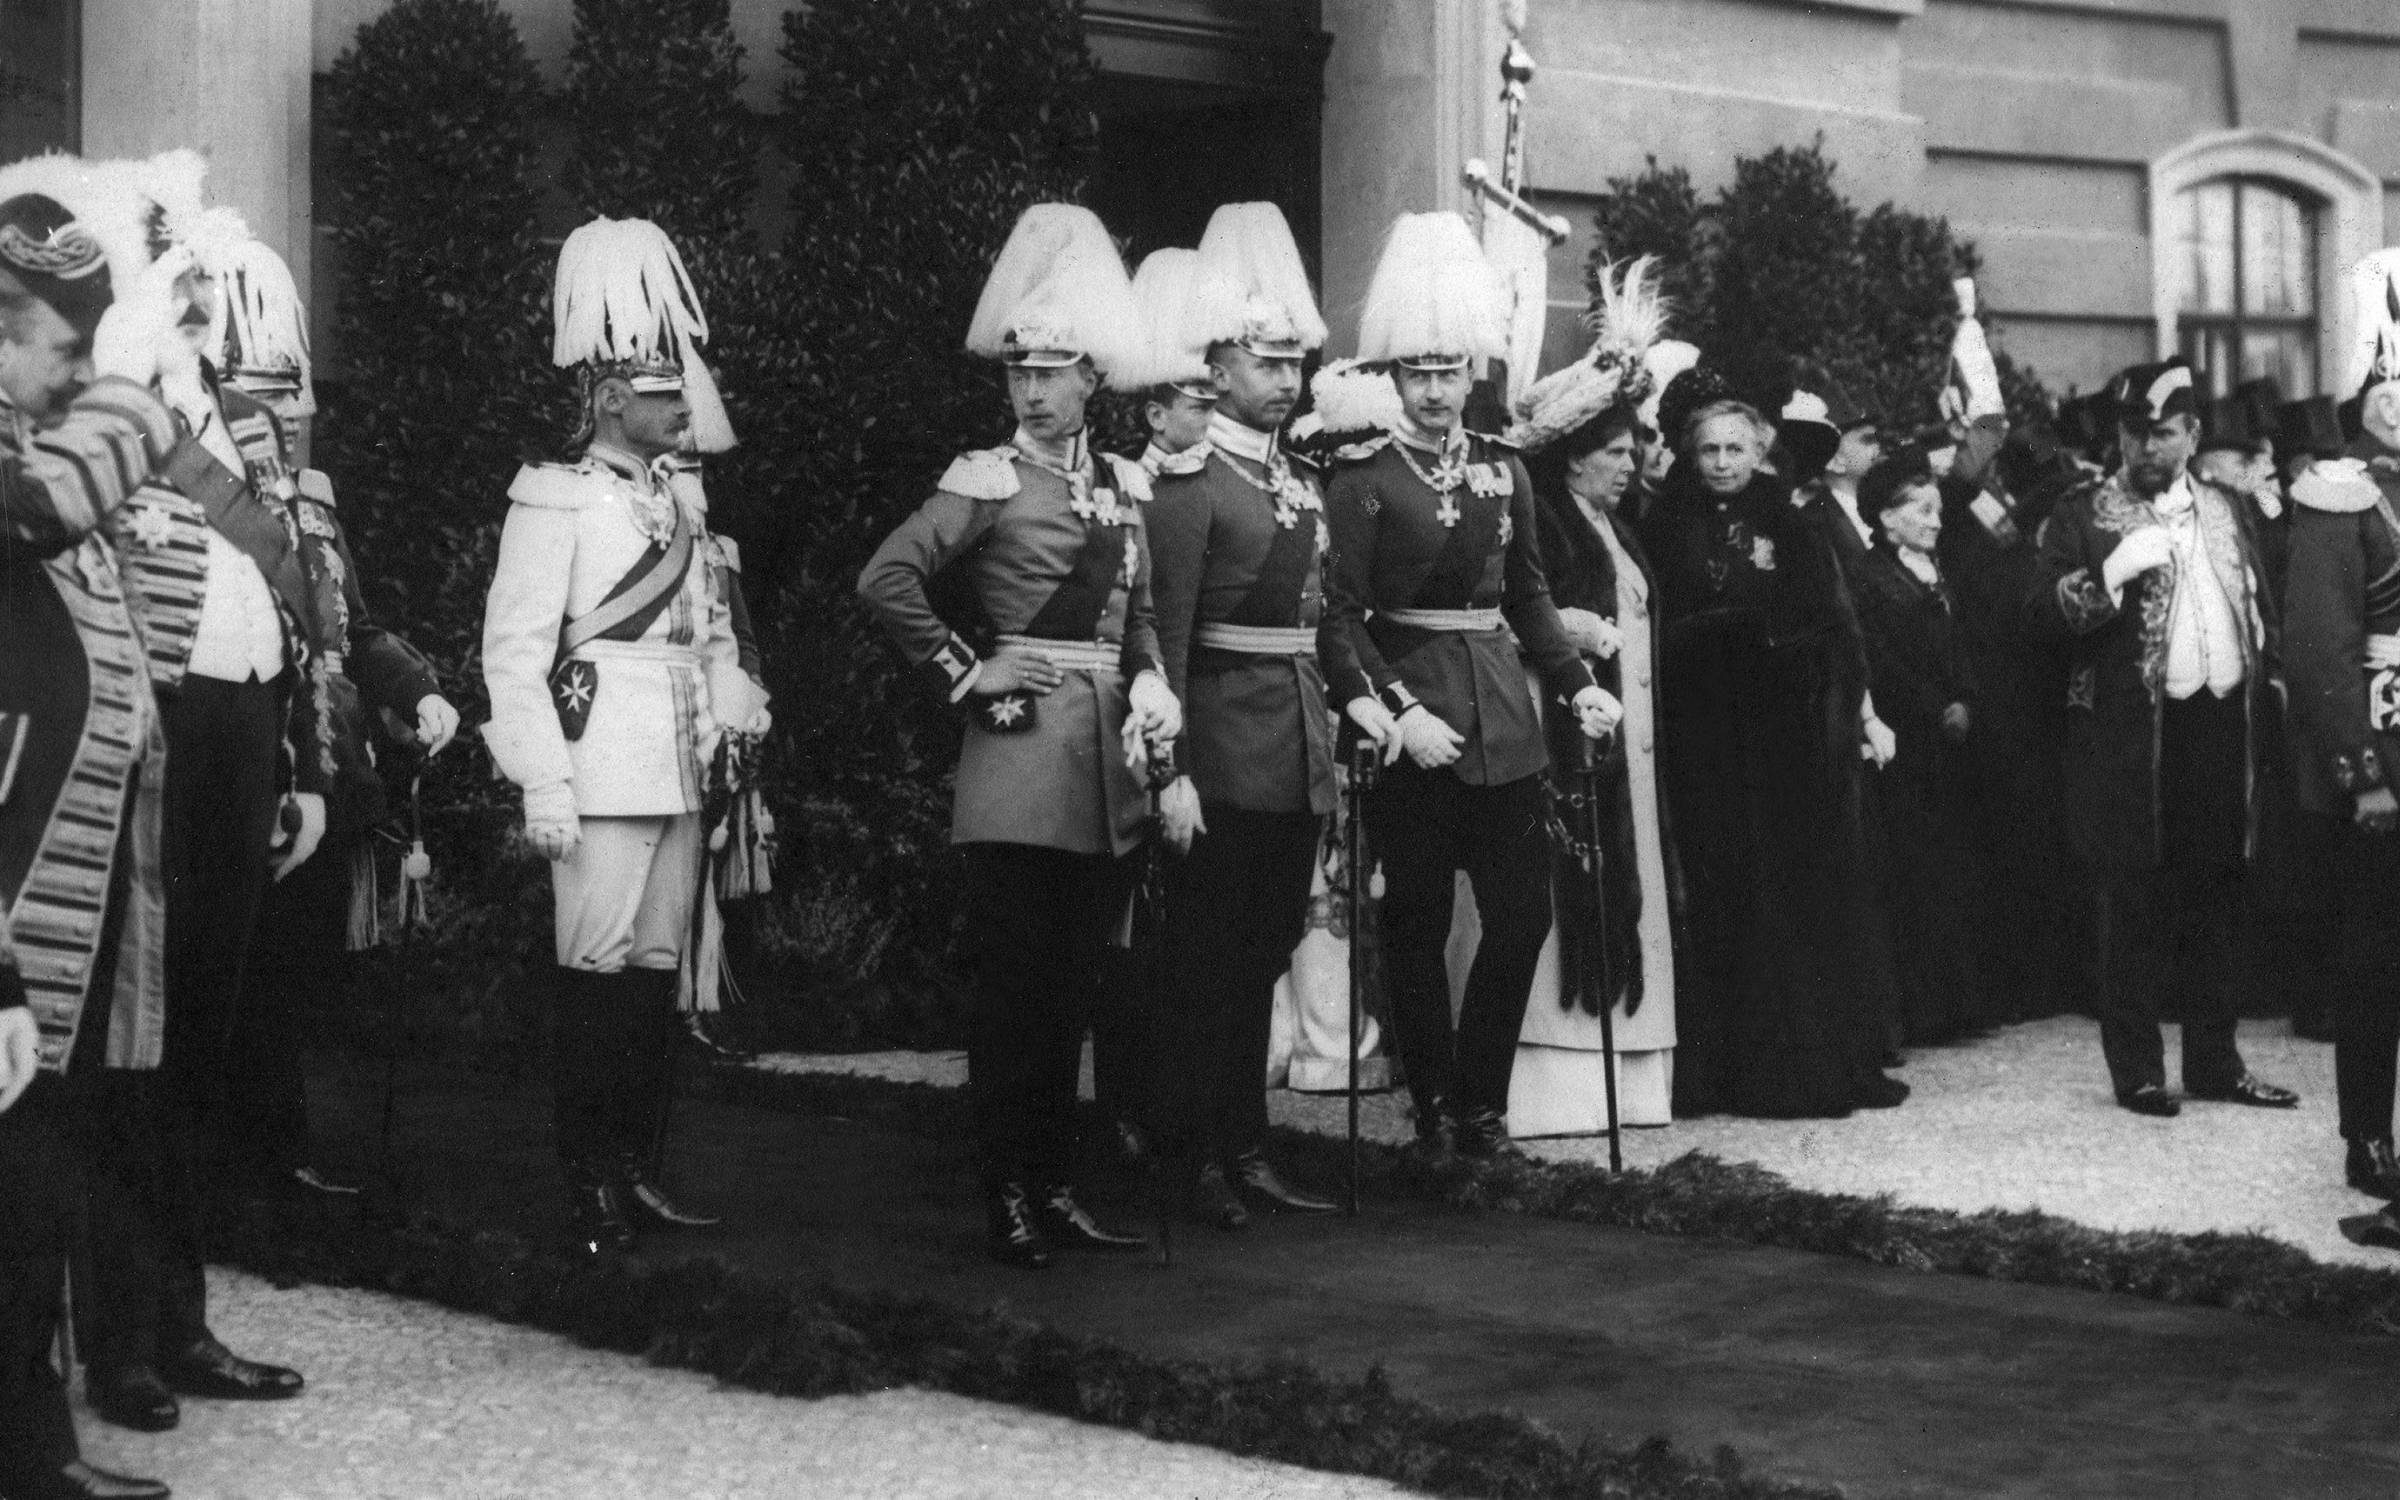 Members of the imperial family at the centenary celebrations at the University of Berlin in 1909. Credit: ullstein bild/ullstein bild via Getty Images